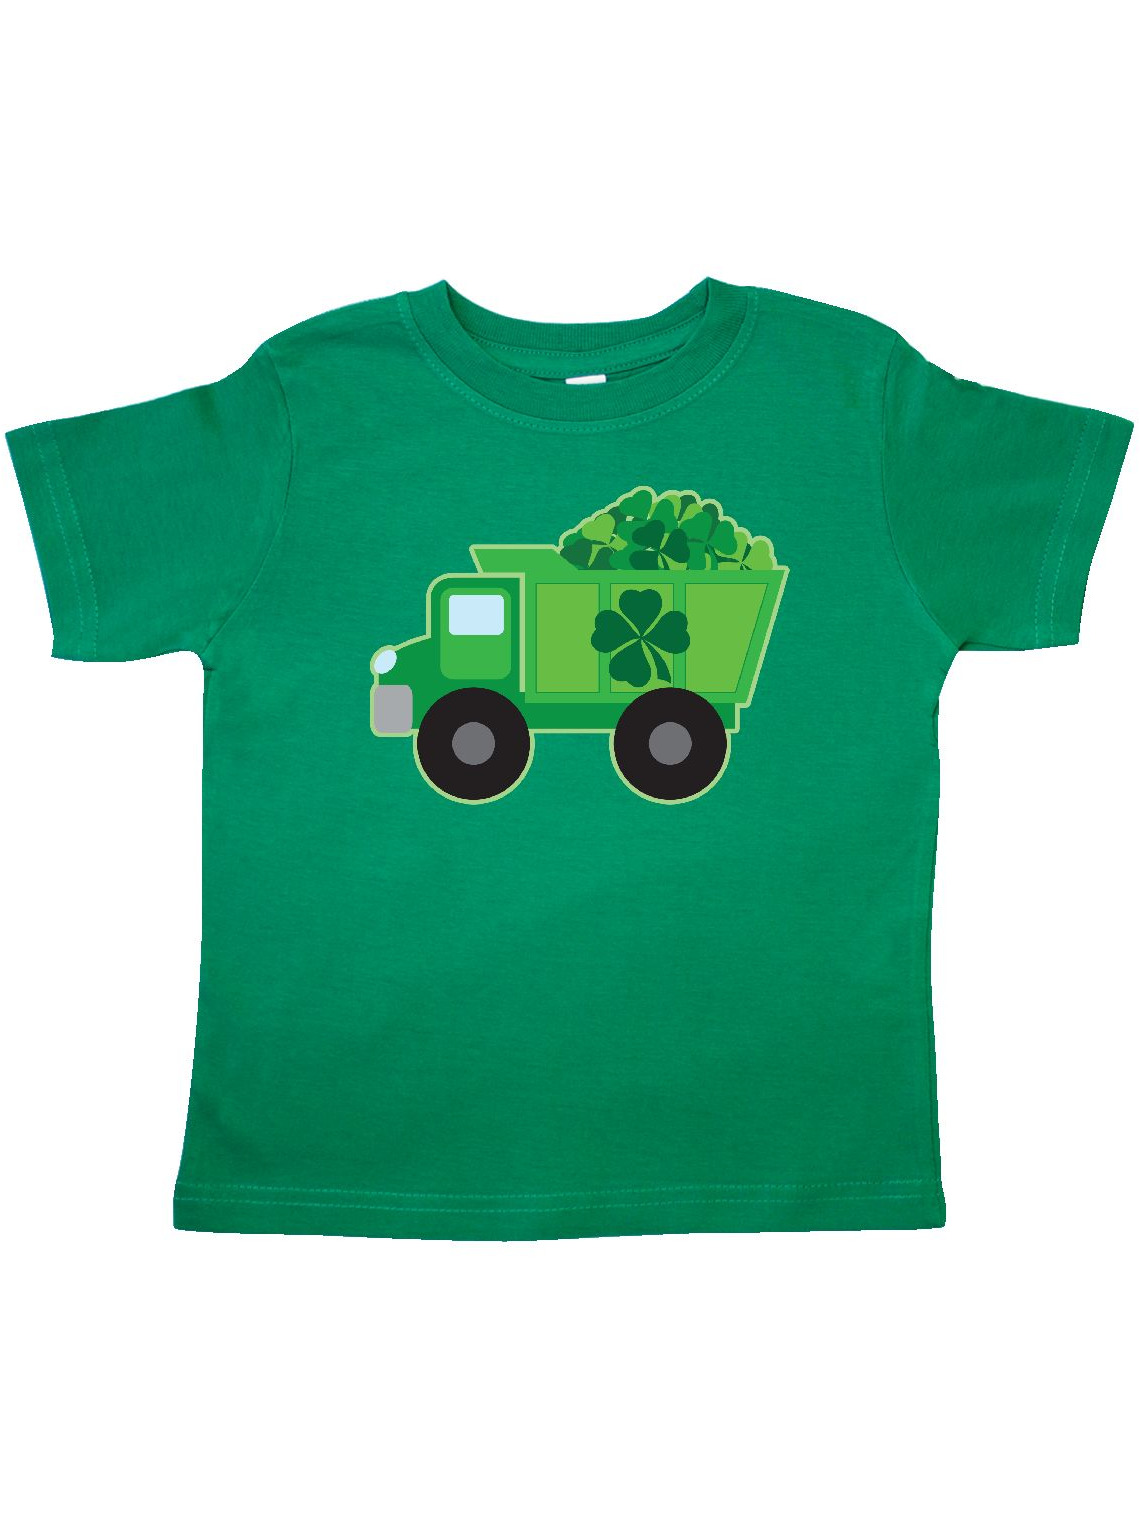 St Patricks Day Irish Clover Dump Truck Childs Toddler T-Shirt